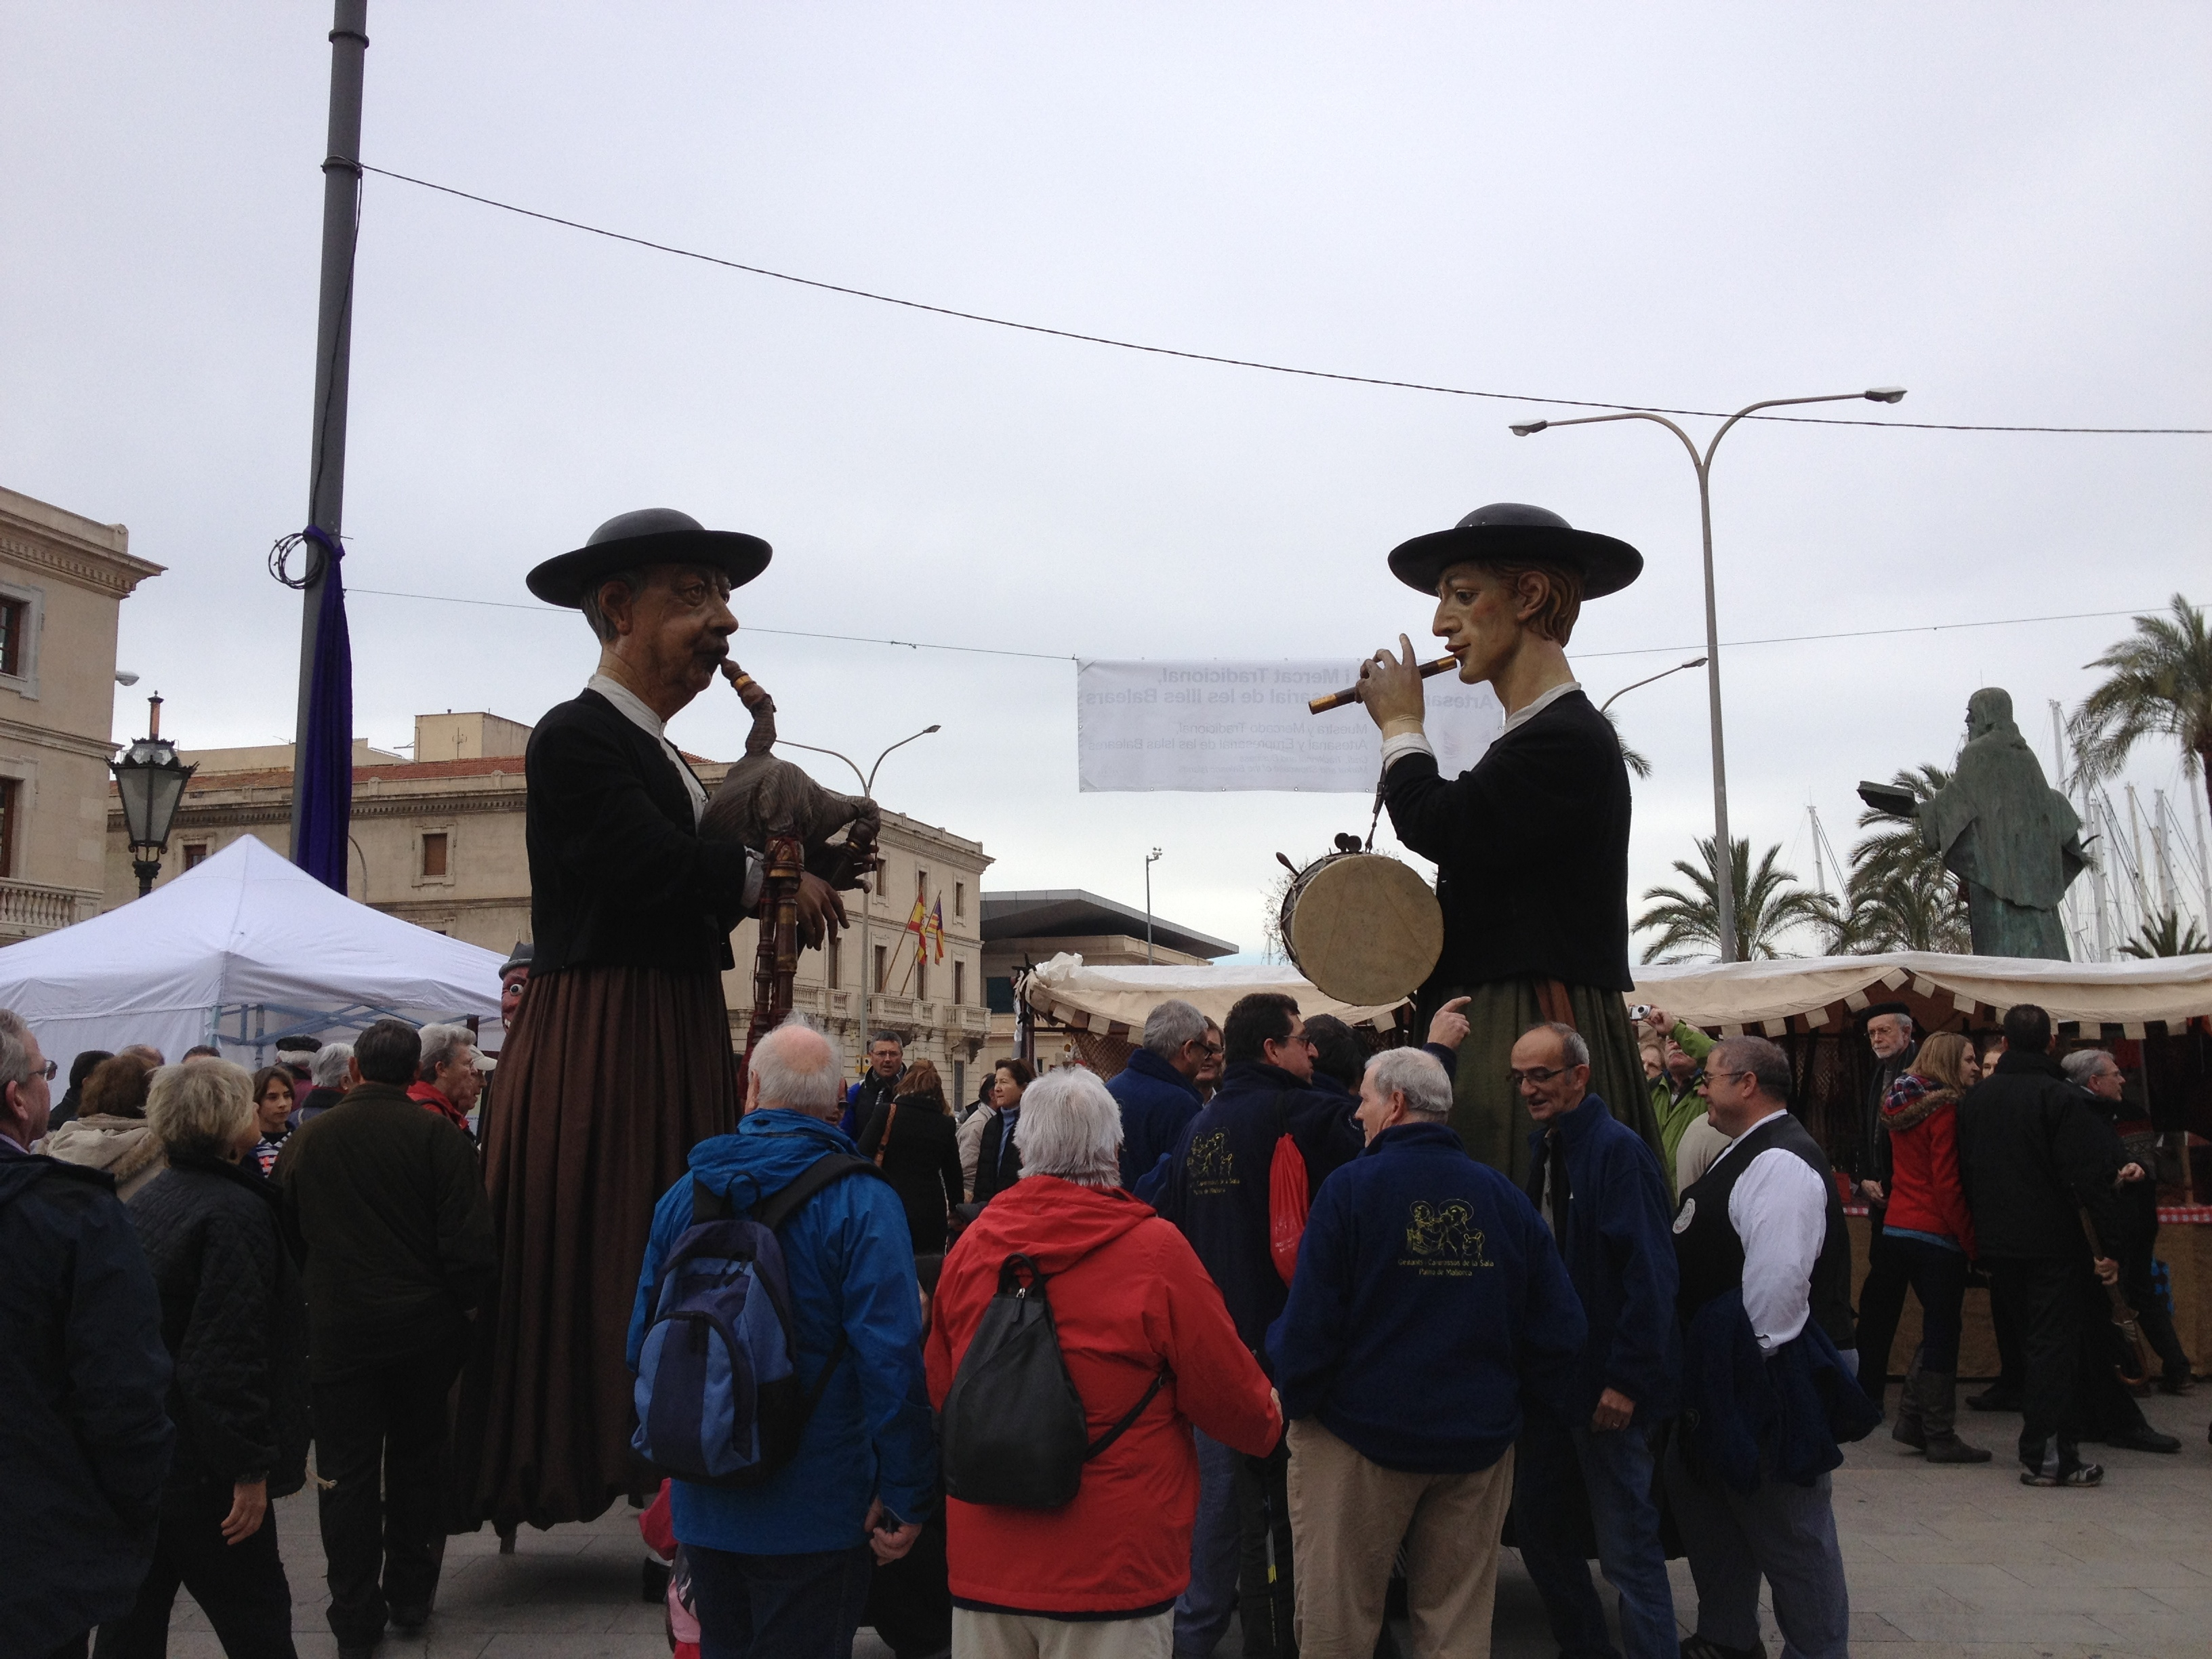 Mallorca Private tour guides-Mallorcan folklore